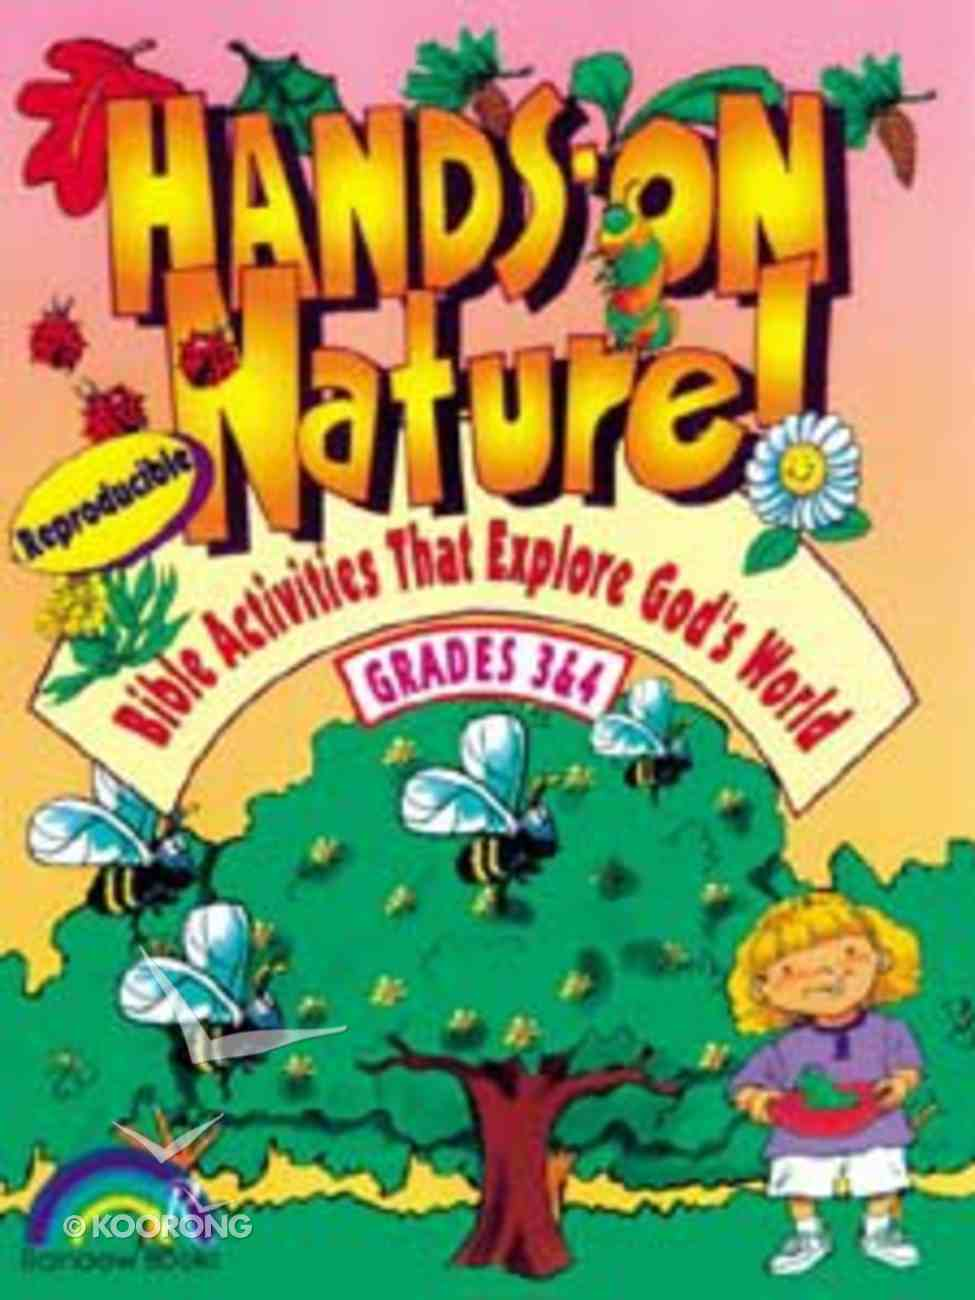 Hands-On Nature: Grades 3&4 (Reproducible) Paperback